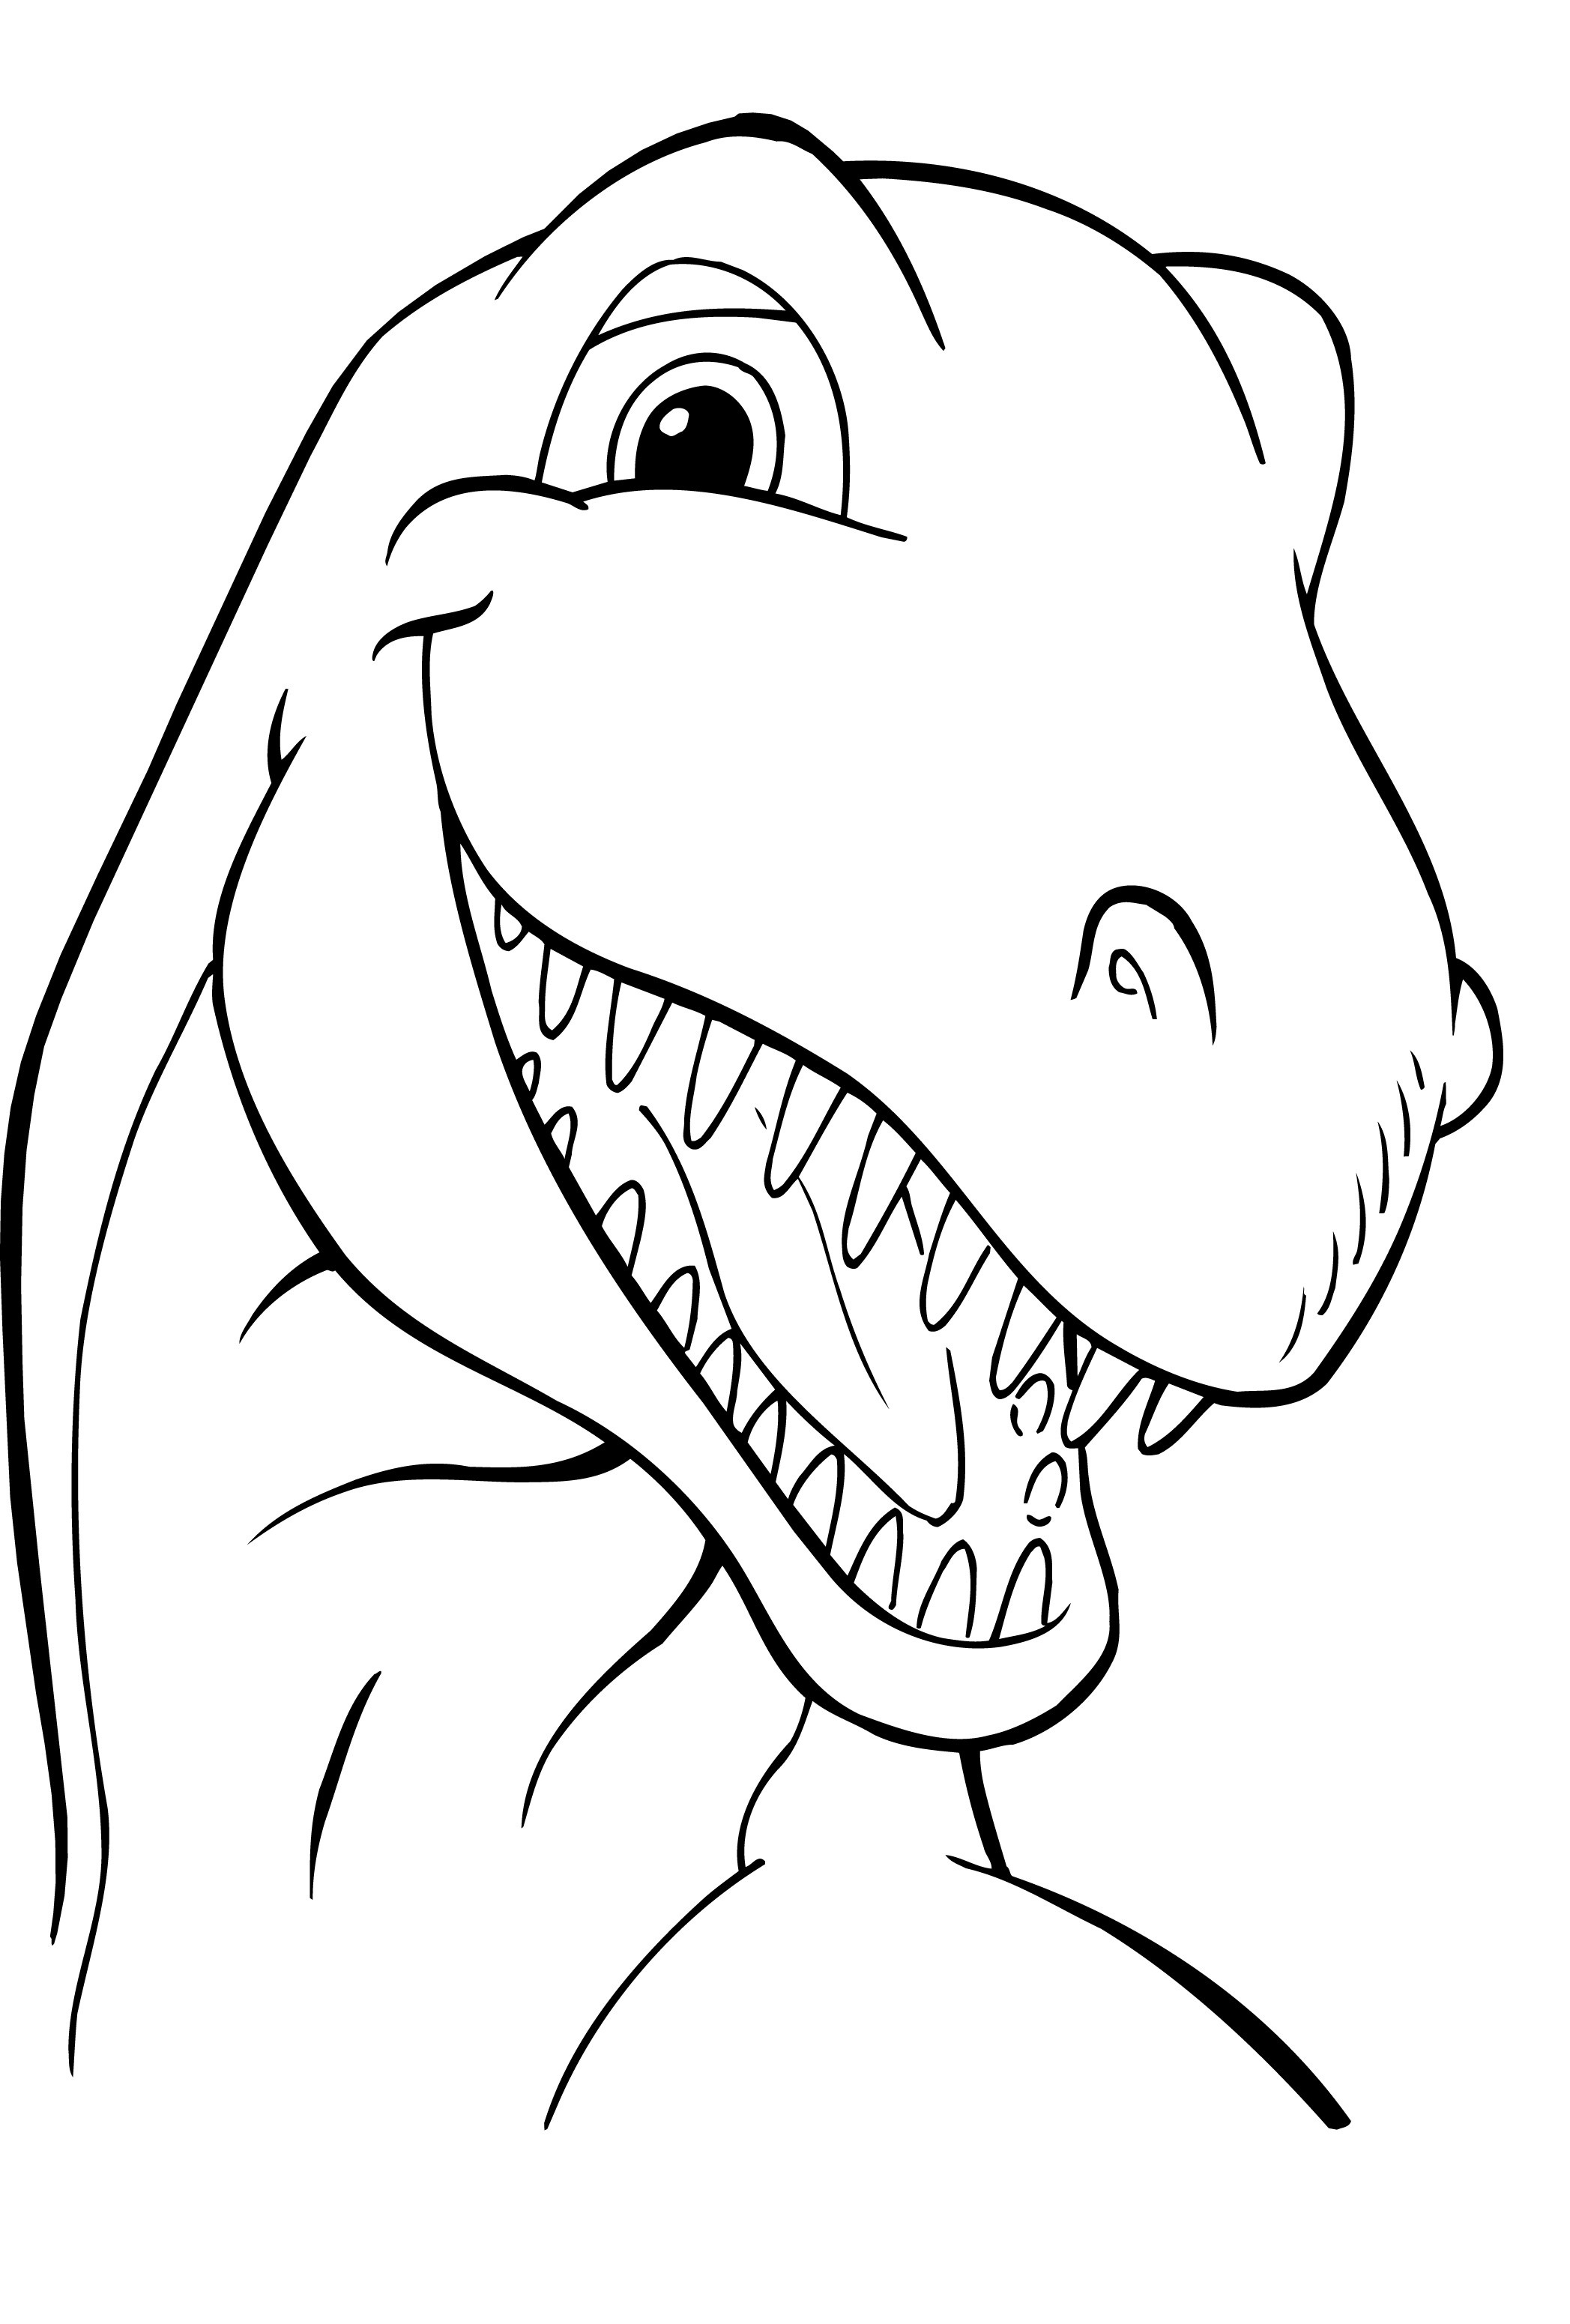 kids coloring pages dinosaurs - photo#16